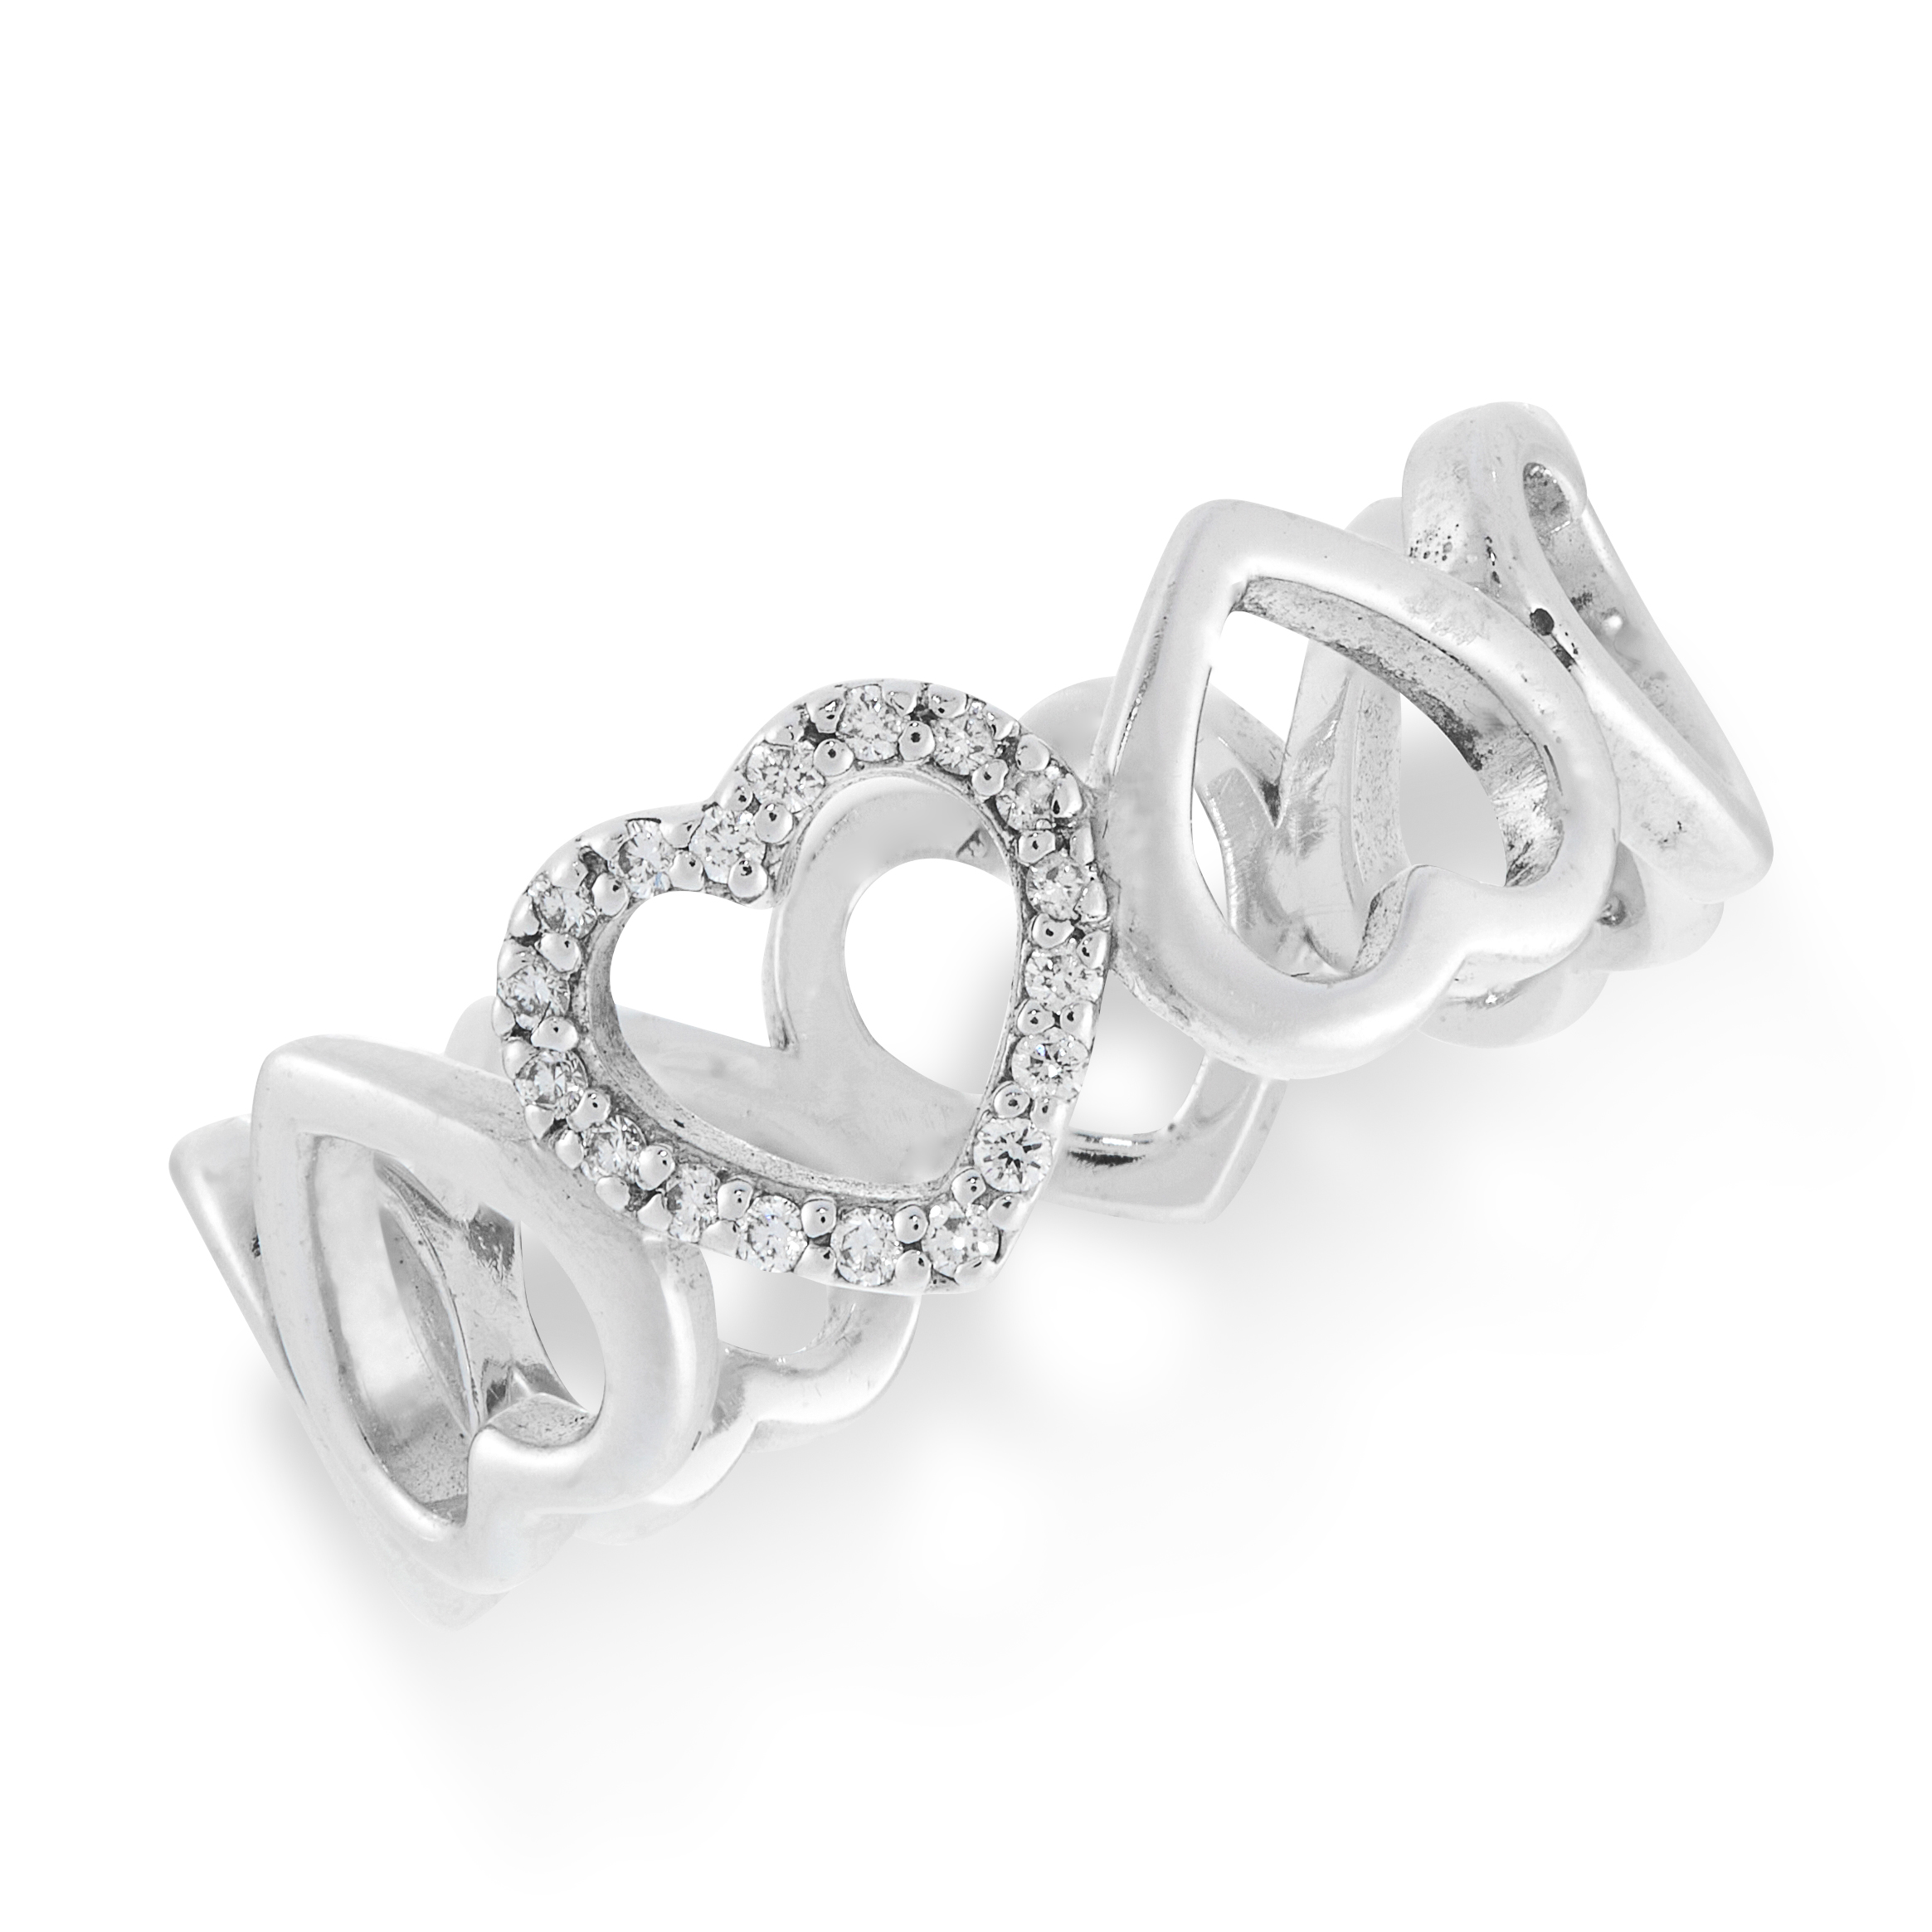 A DIAMOND HEART RING, TIFFANY & CO in 18ct white gold, the band formed of a row of eight hearts, one